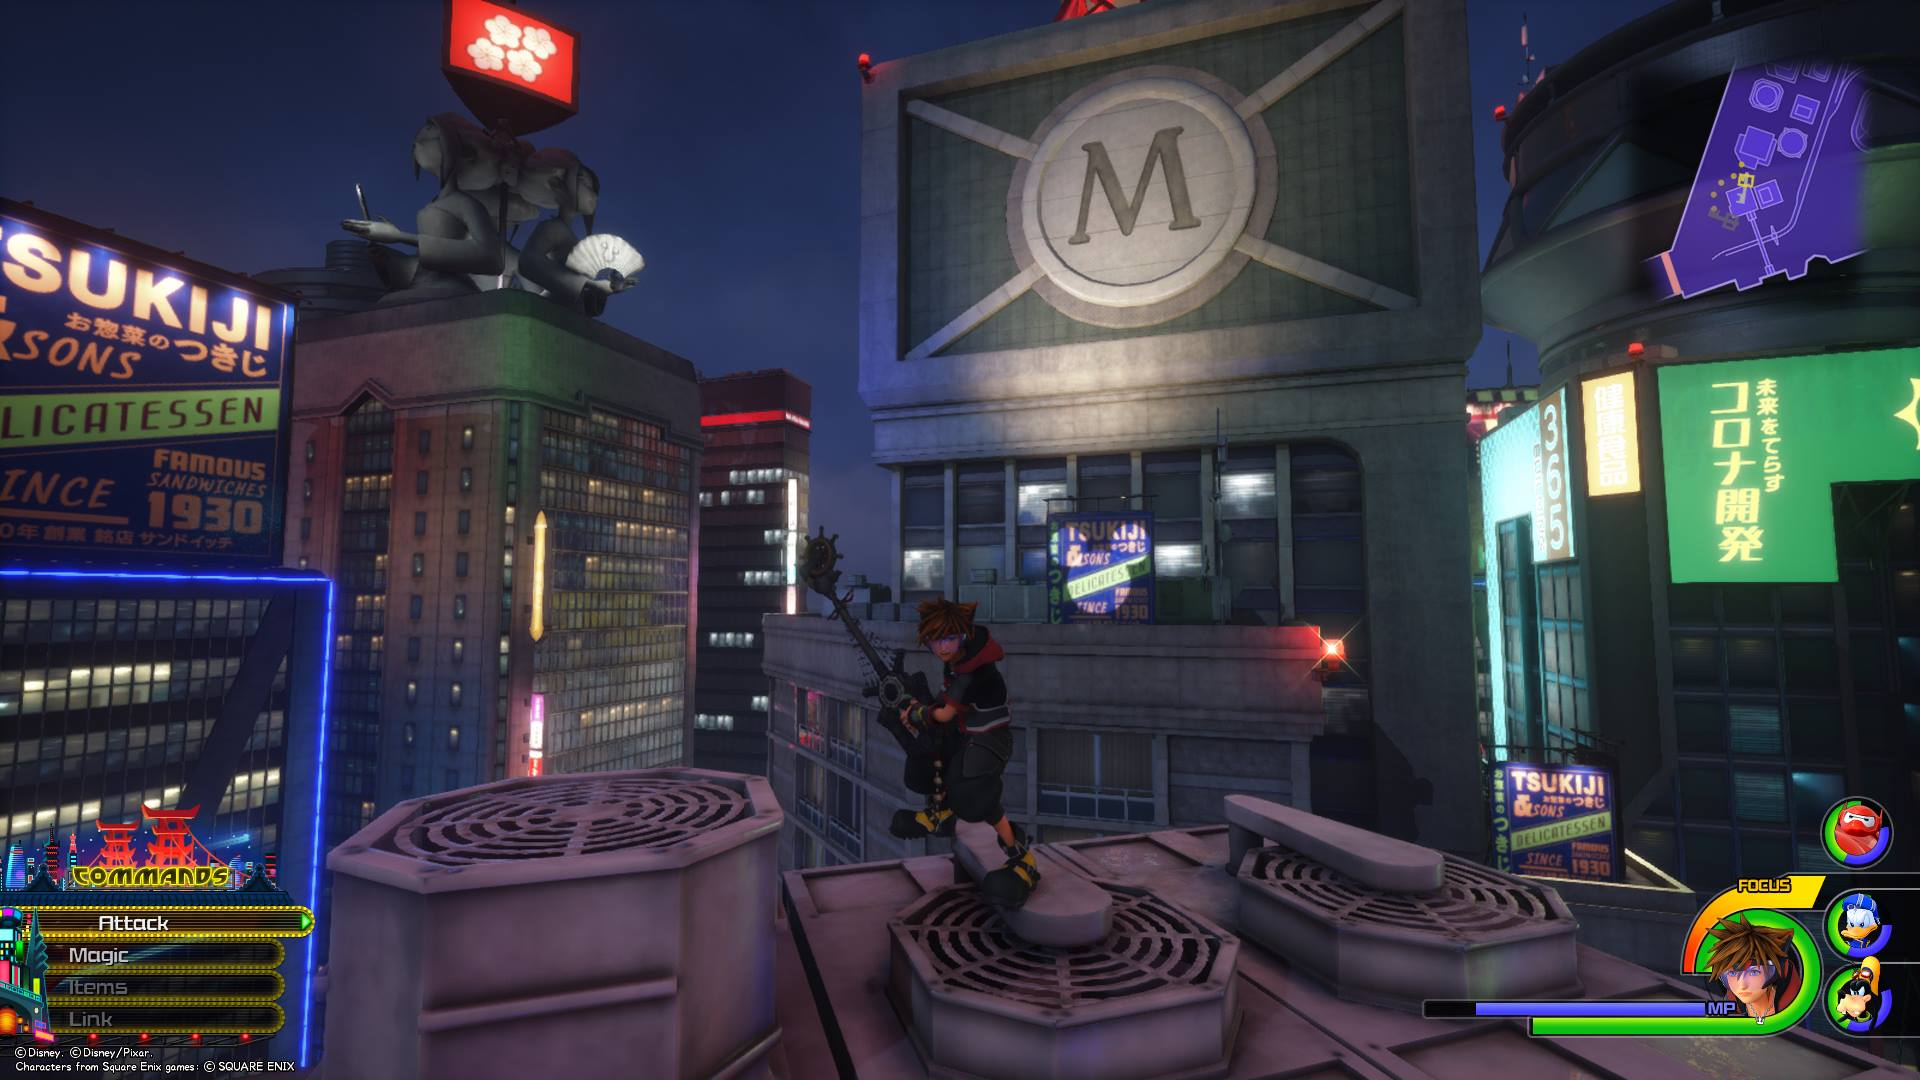 This Lucky Emblem can only be found at night. To collect it, interact with the South District save point and choose to spawn into the South District at night. Then, climb the building across from the one with a large M on it and you should see the Lucky Emblem.